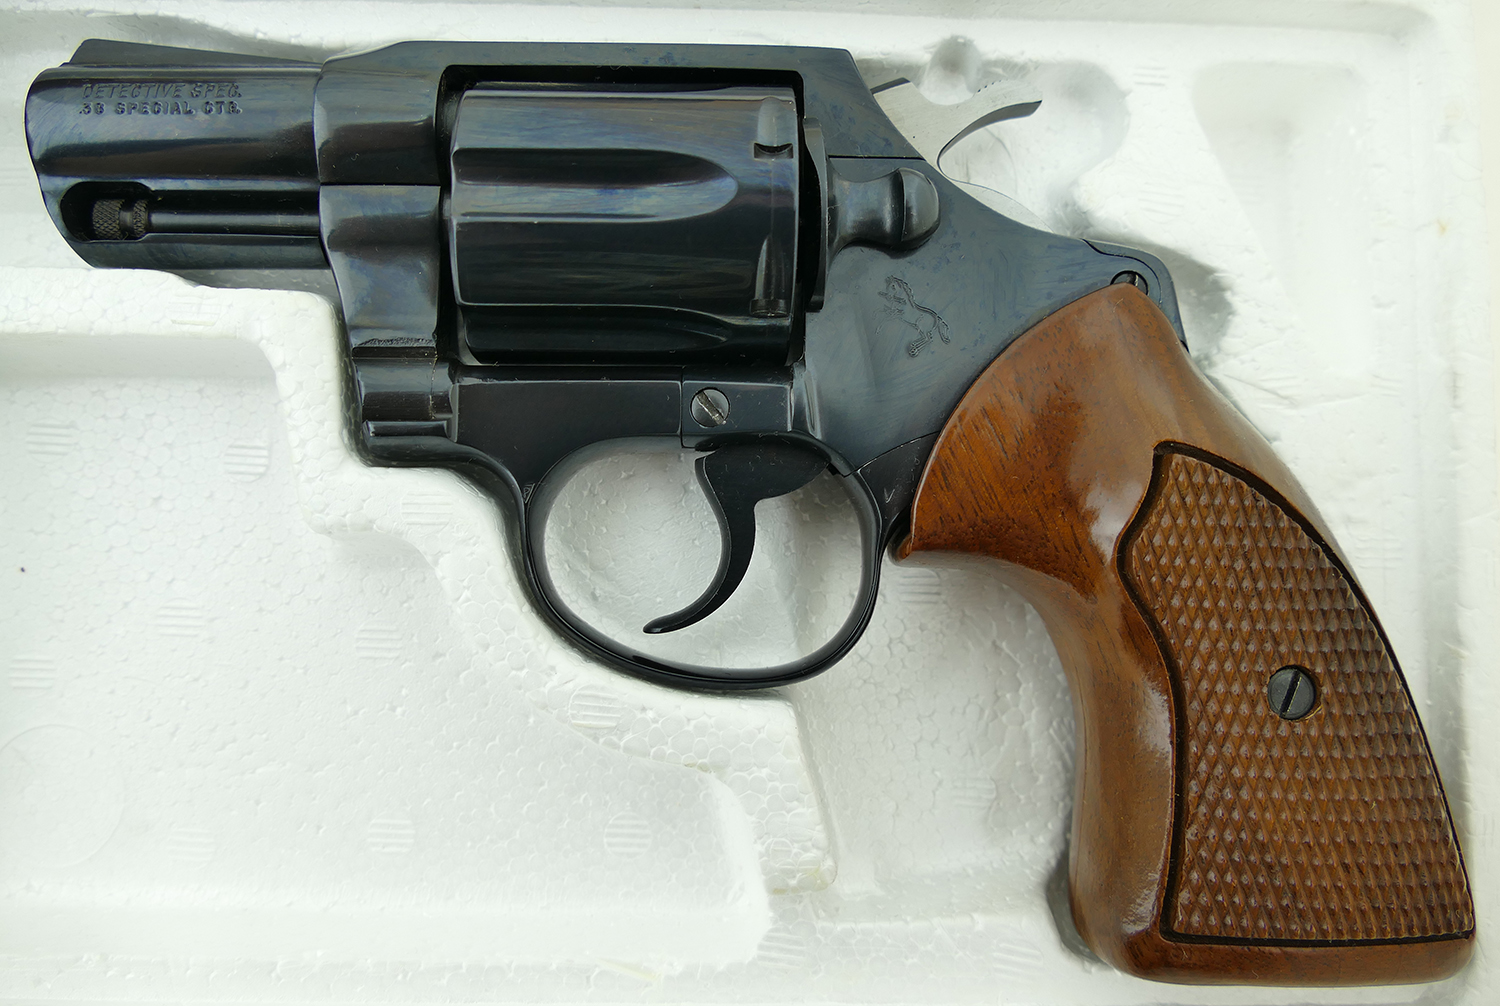 colt detective special dating The colt 38-caliber detective's special revolver, which was recovered  the  gun, which has a 1926 patent date, remains in fine mechanical.